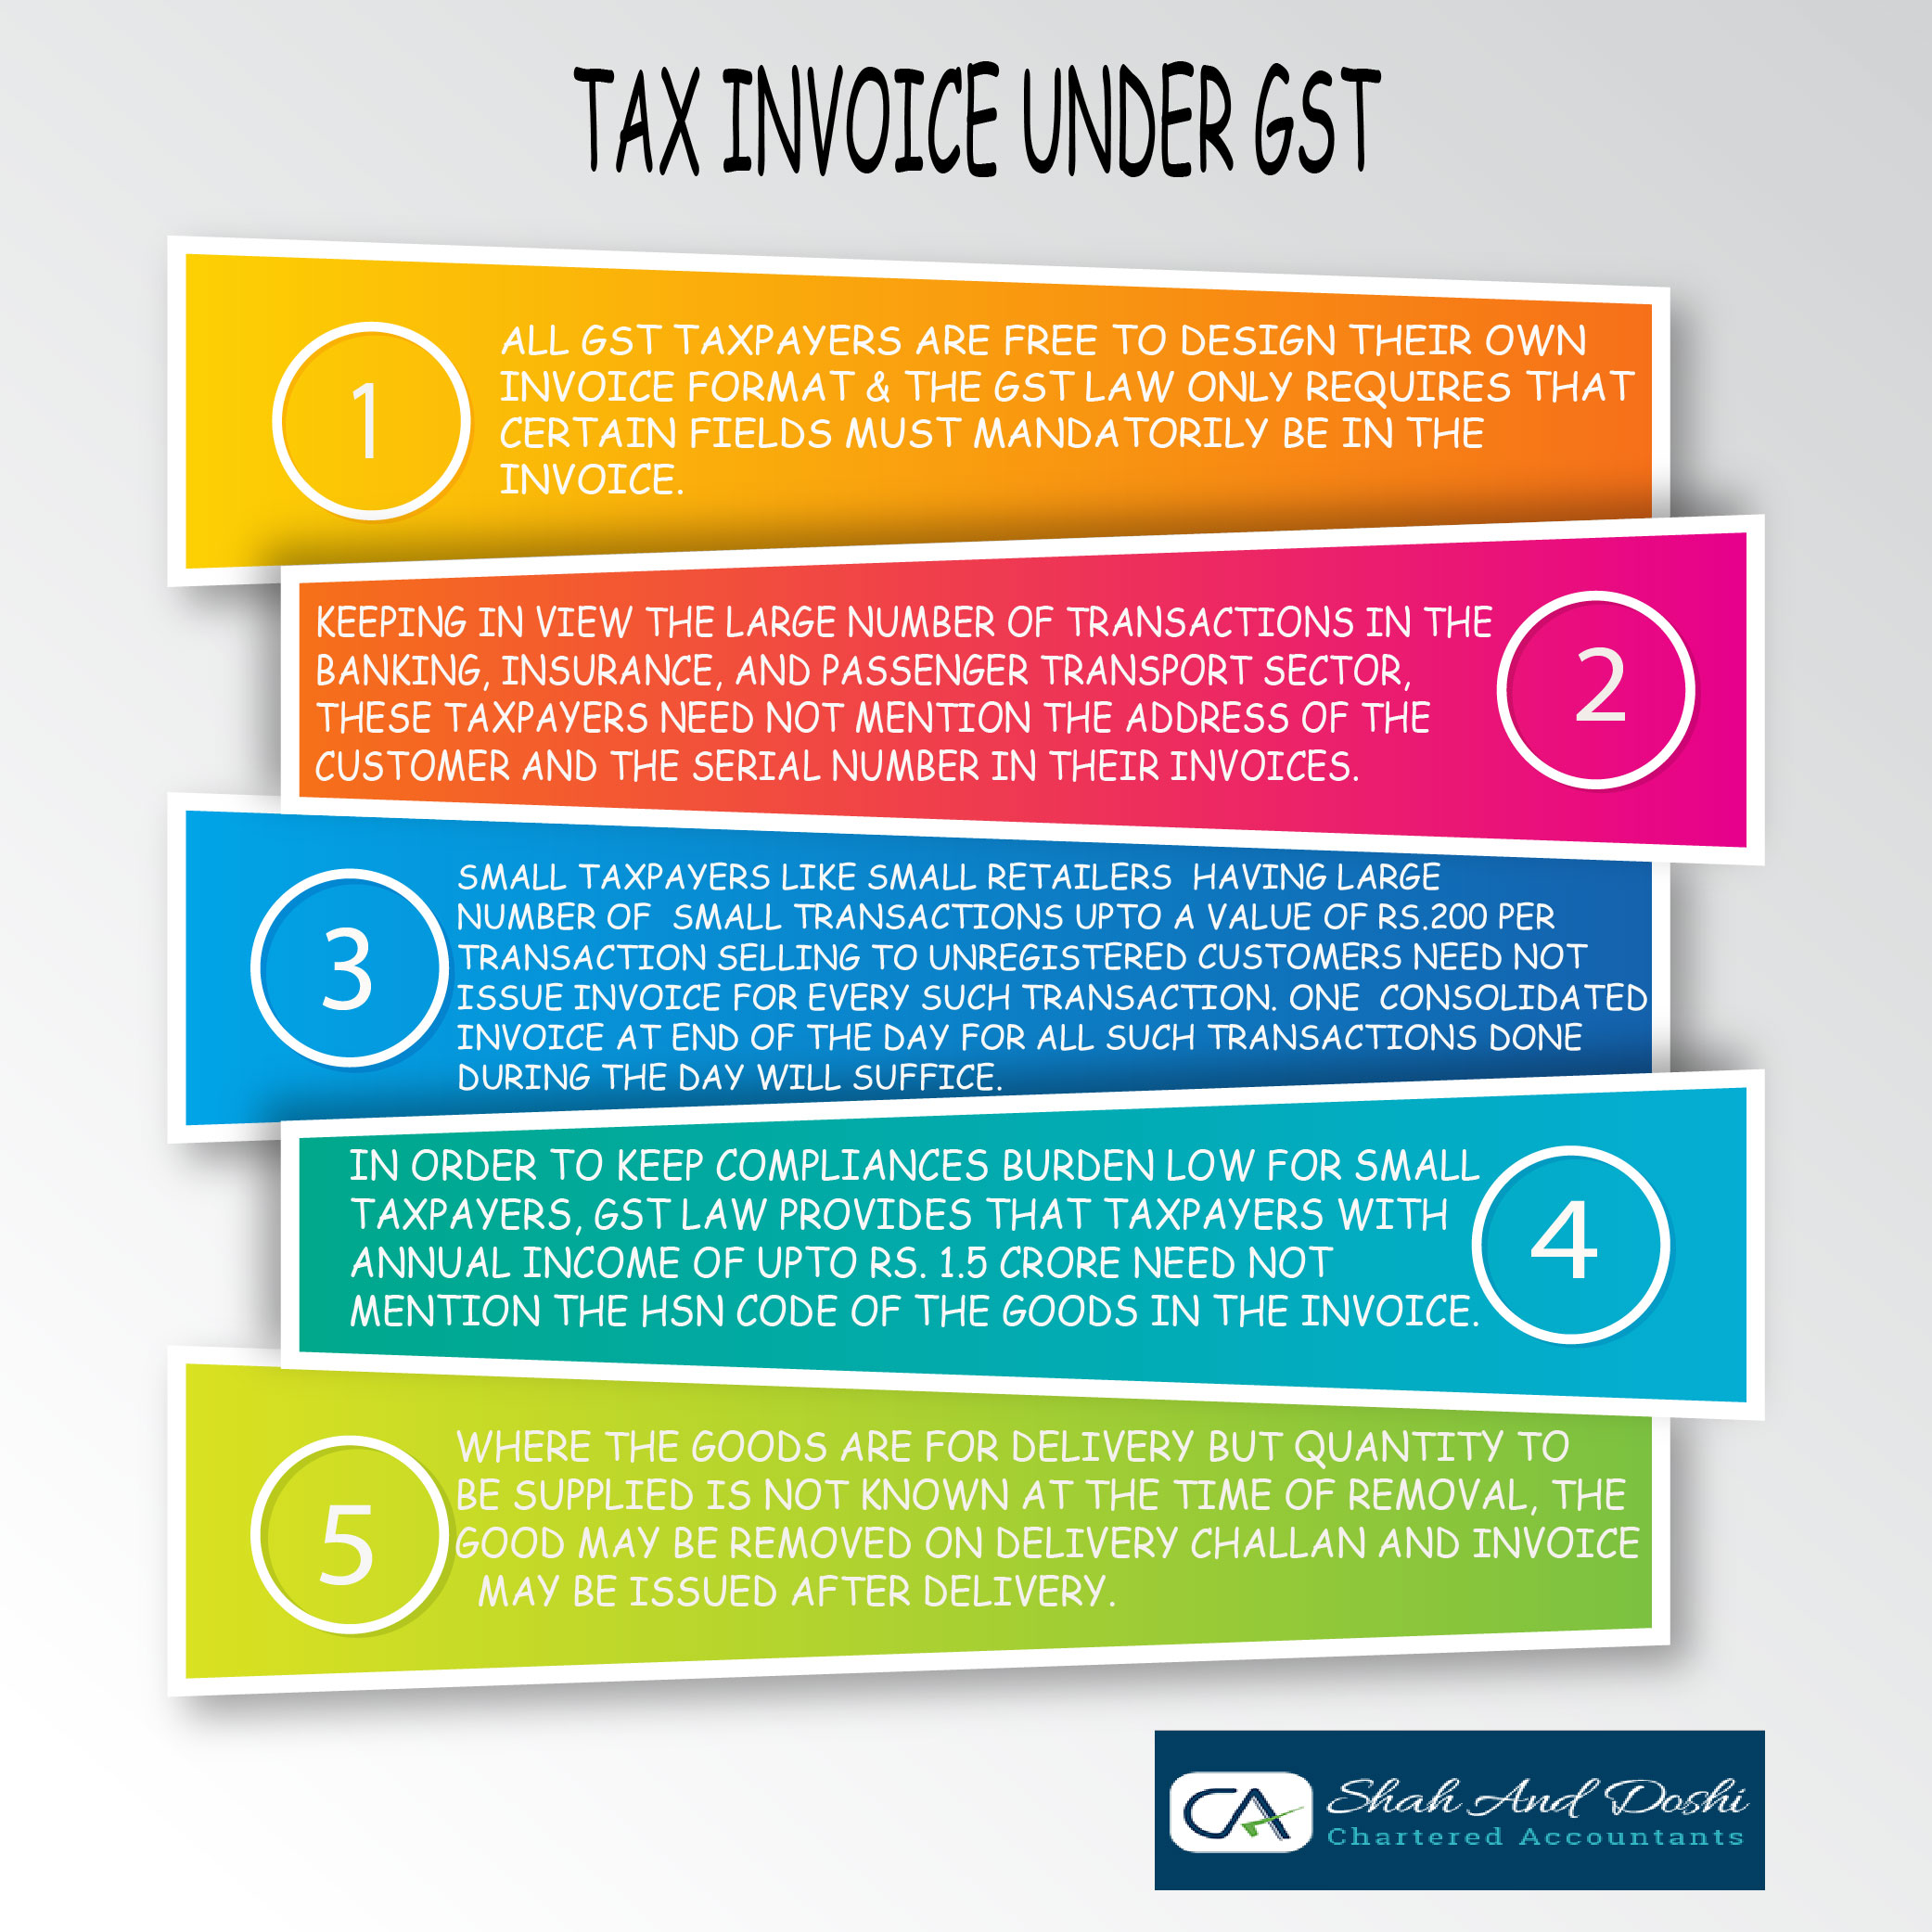 Everything you must know about Tax Invoicing under GST - Shah and Doshi